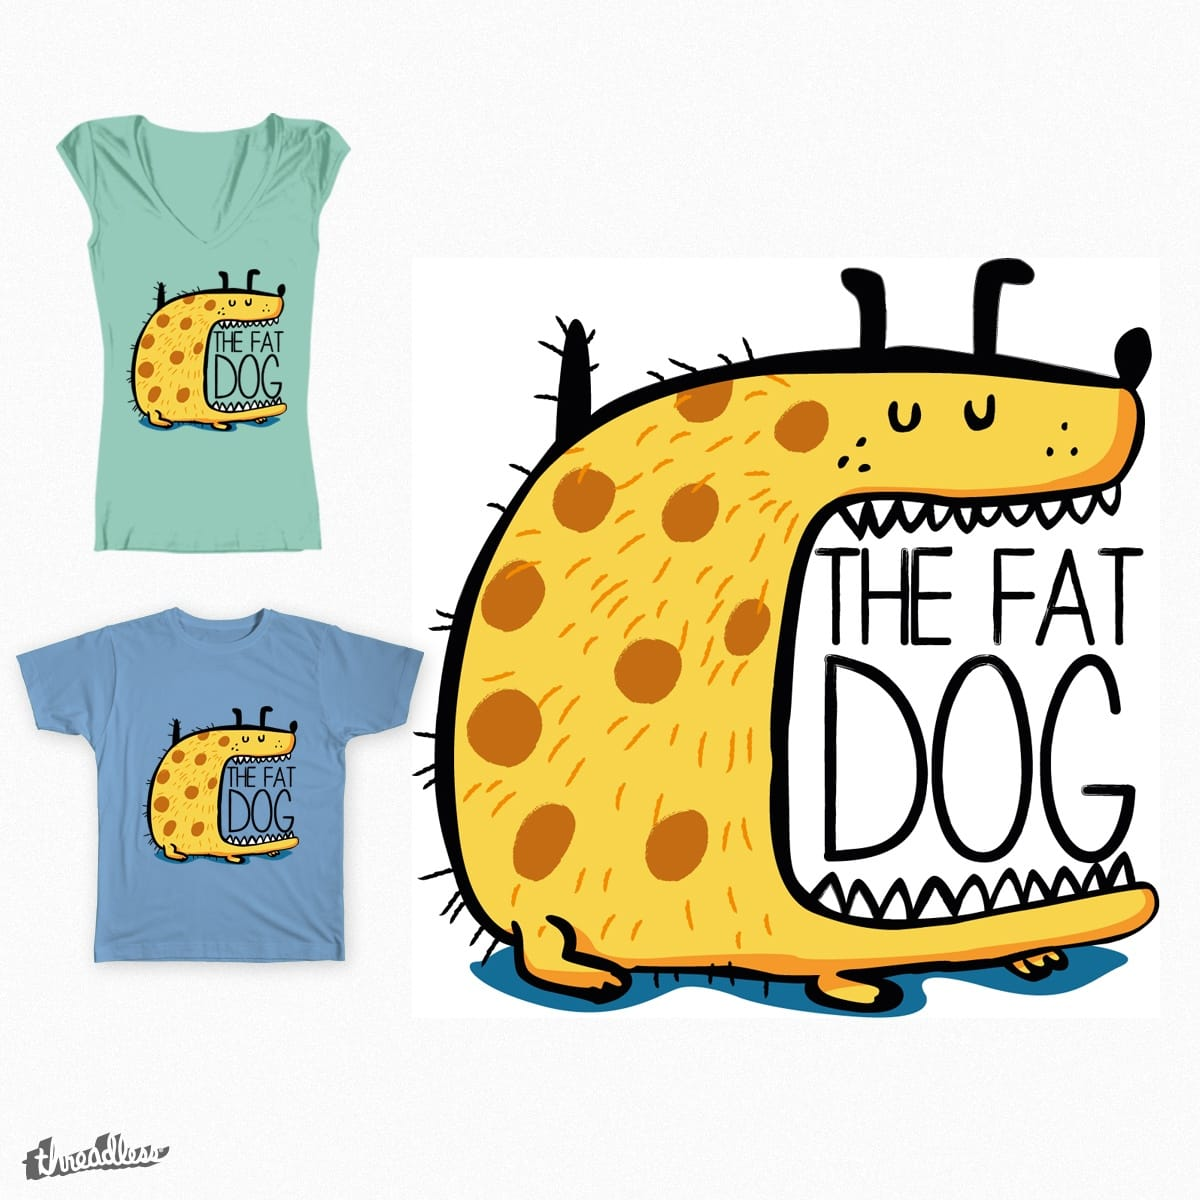 The Fat Dog by Lmampel on Threadless